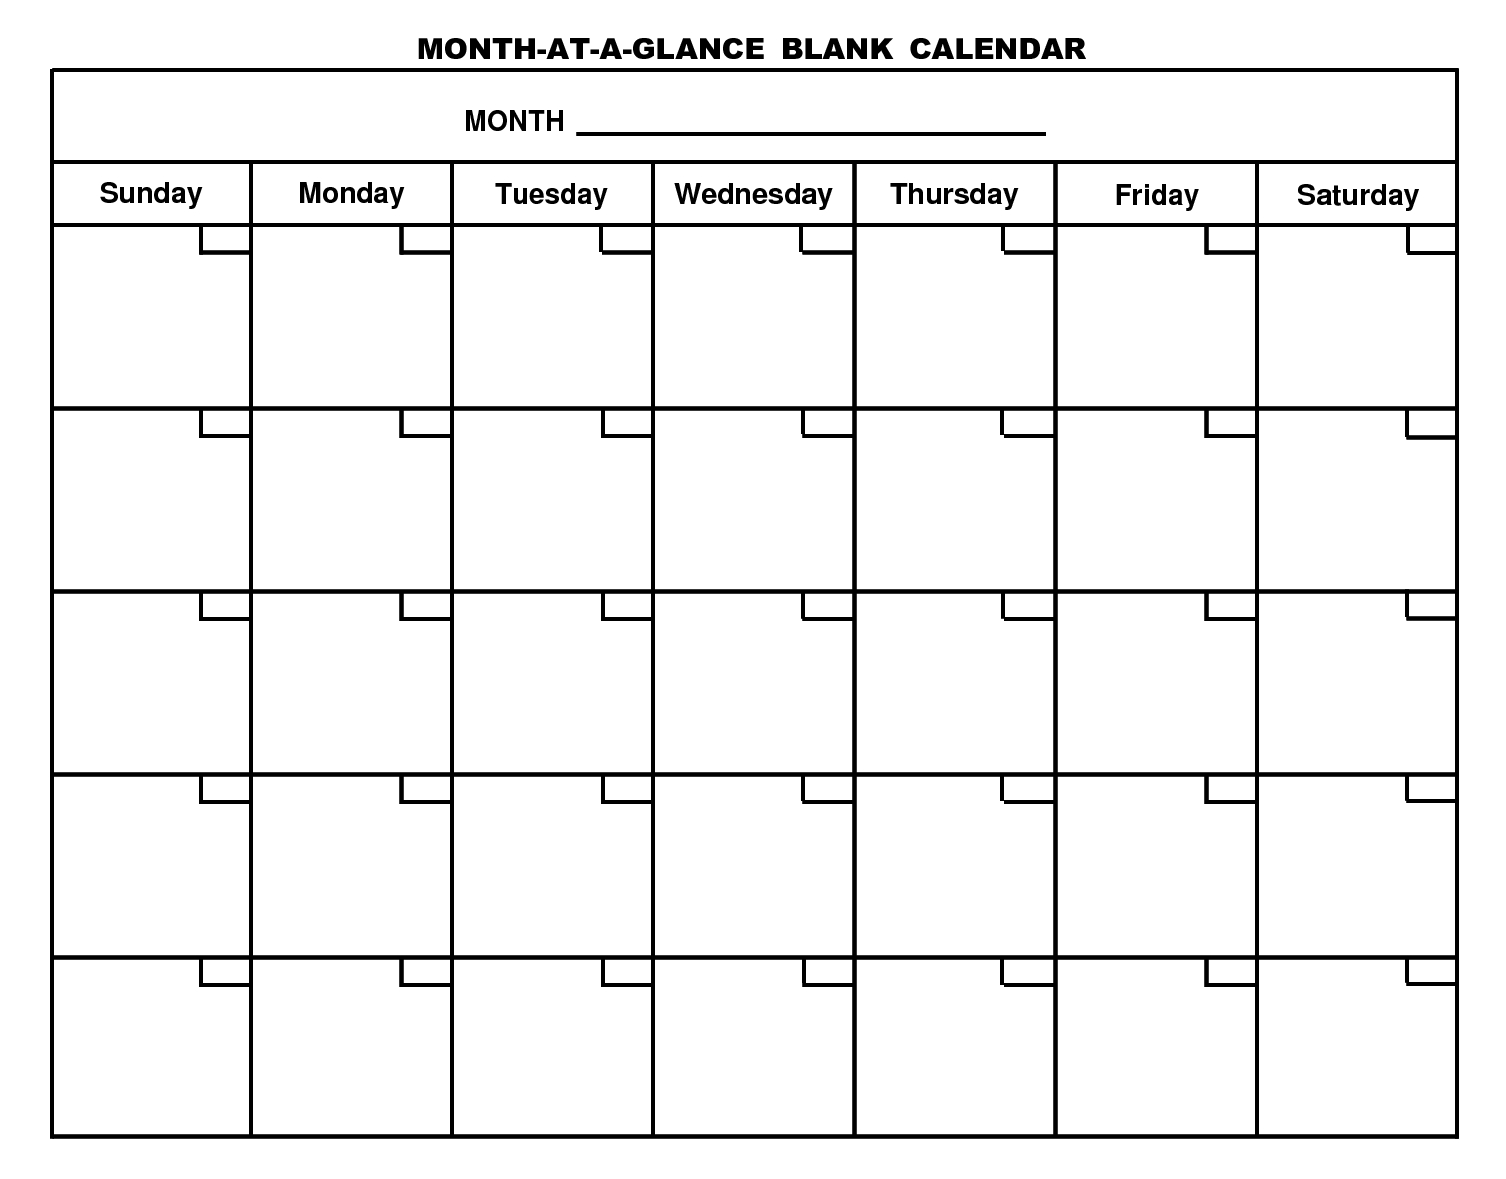 Free Blank Monthly Calendar - Wpa.wpart.co